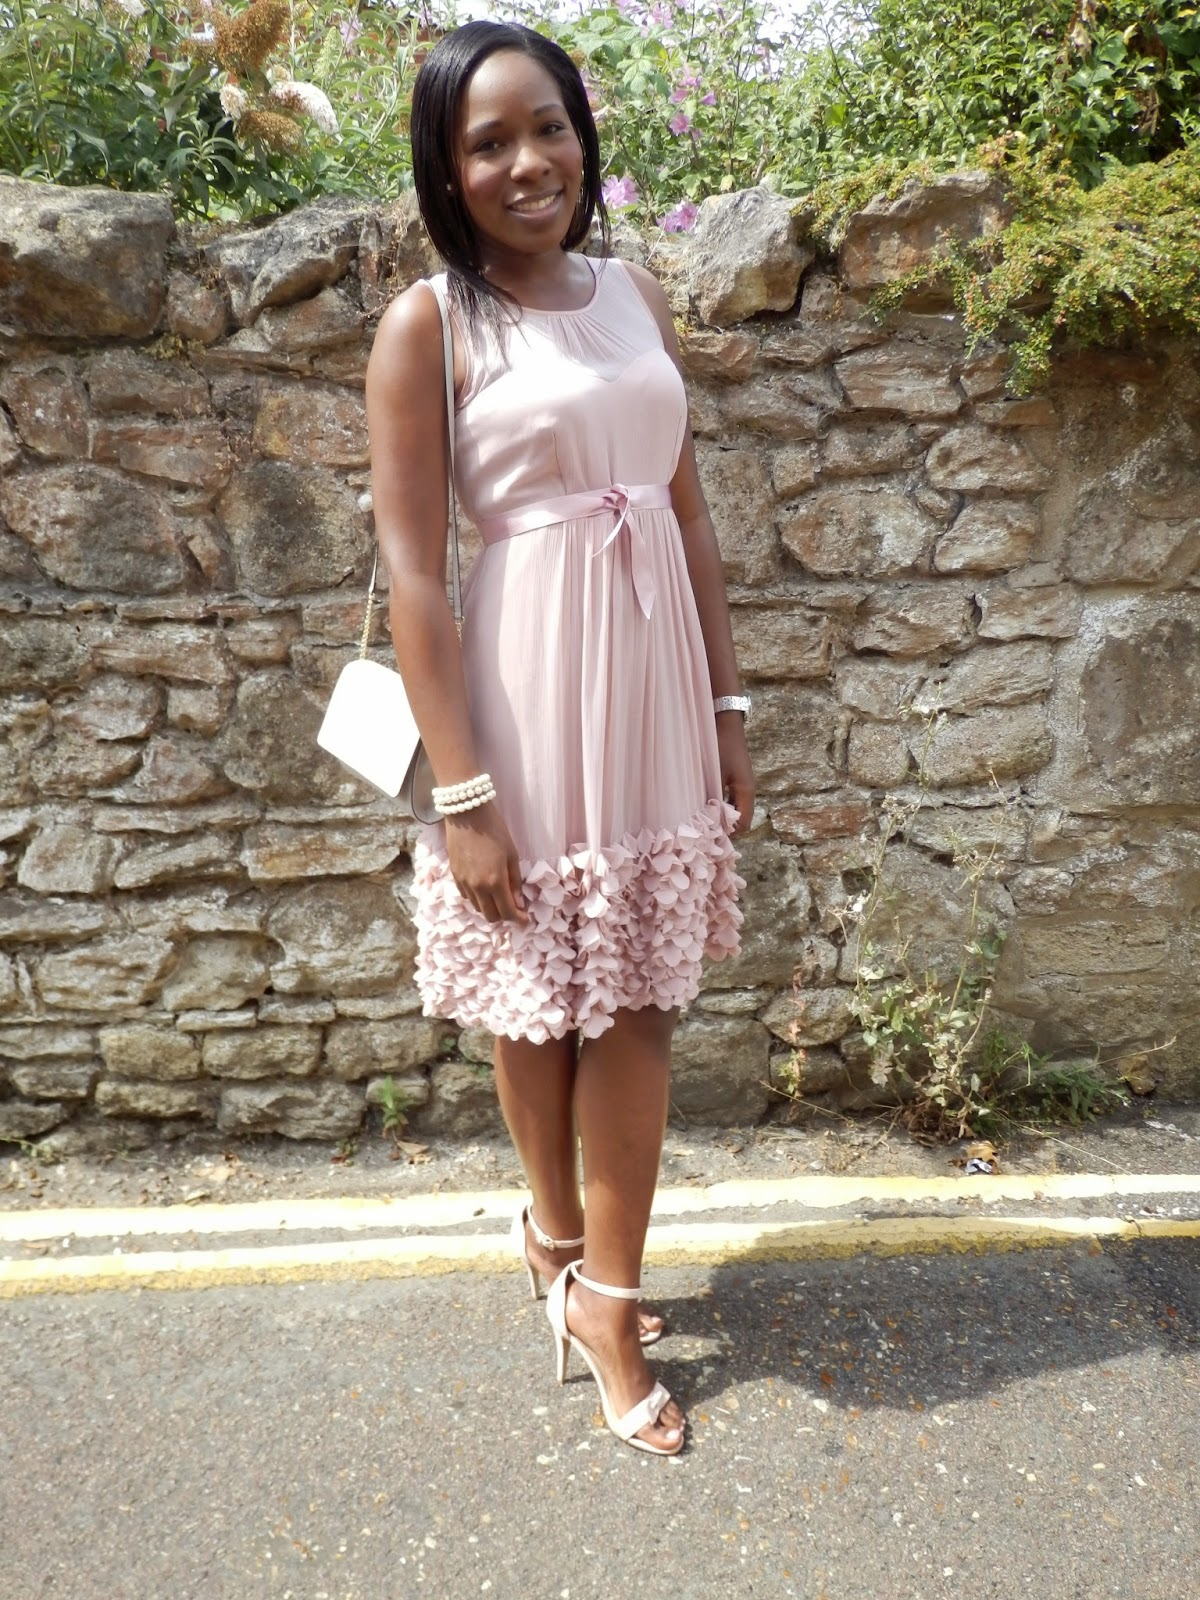 doyounoah: Outfit of the Day - Wedding Guest Dress